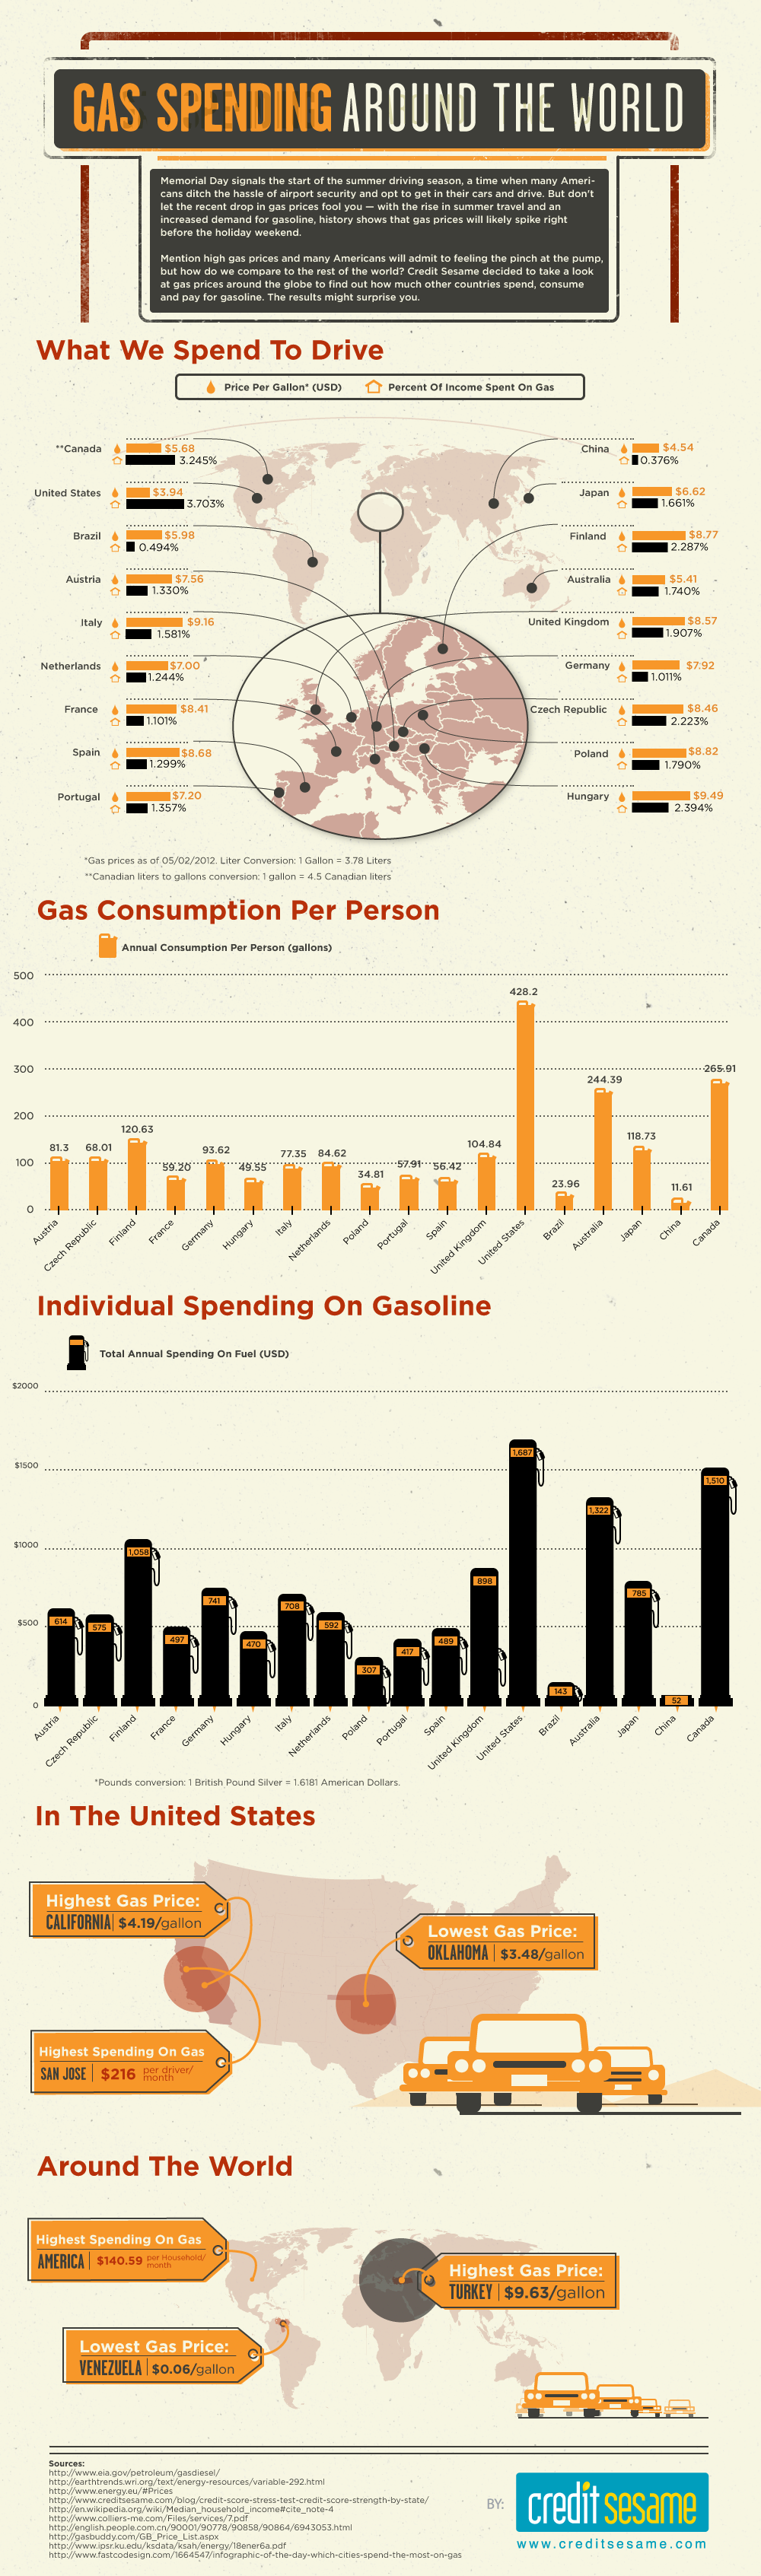 Water Street Design Marketing for Manufacturers Infographic Gas prices summer driving